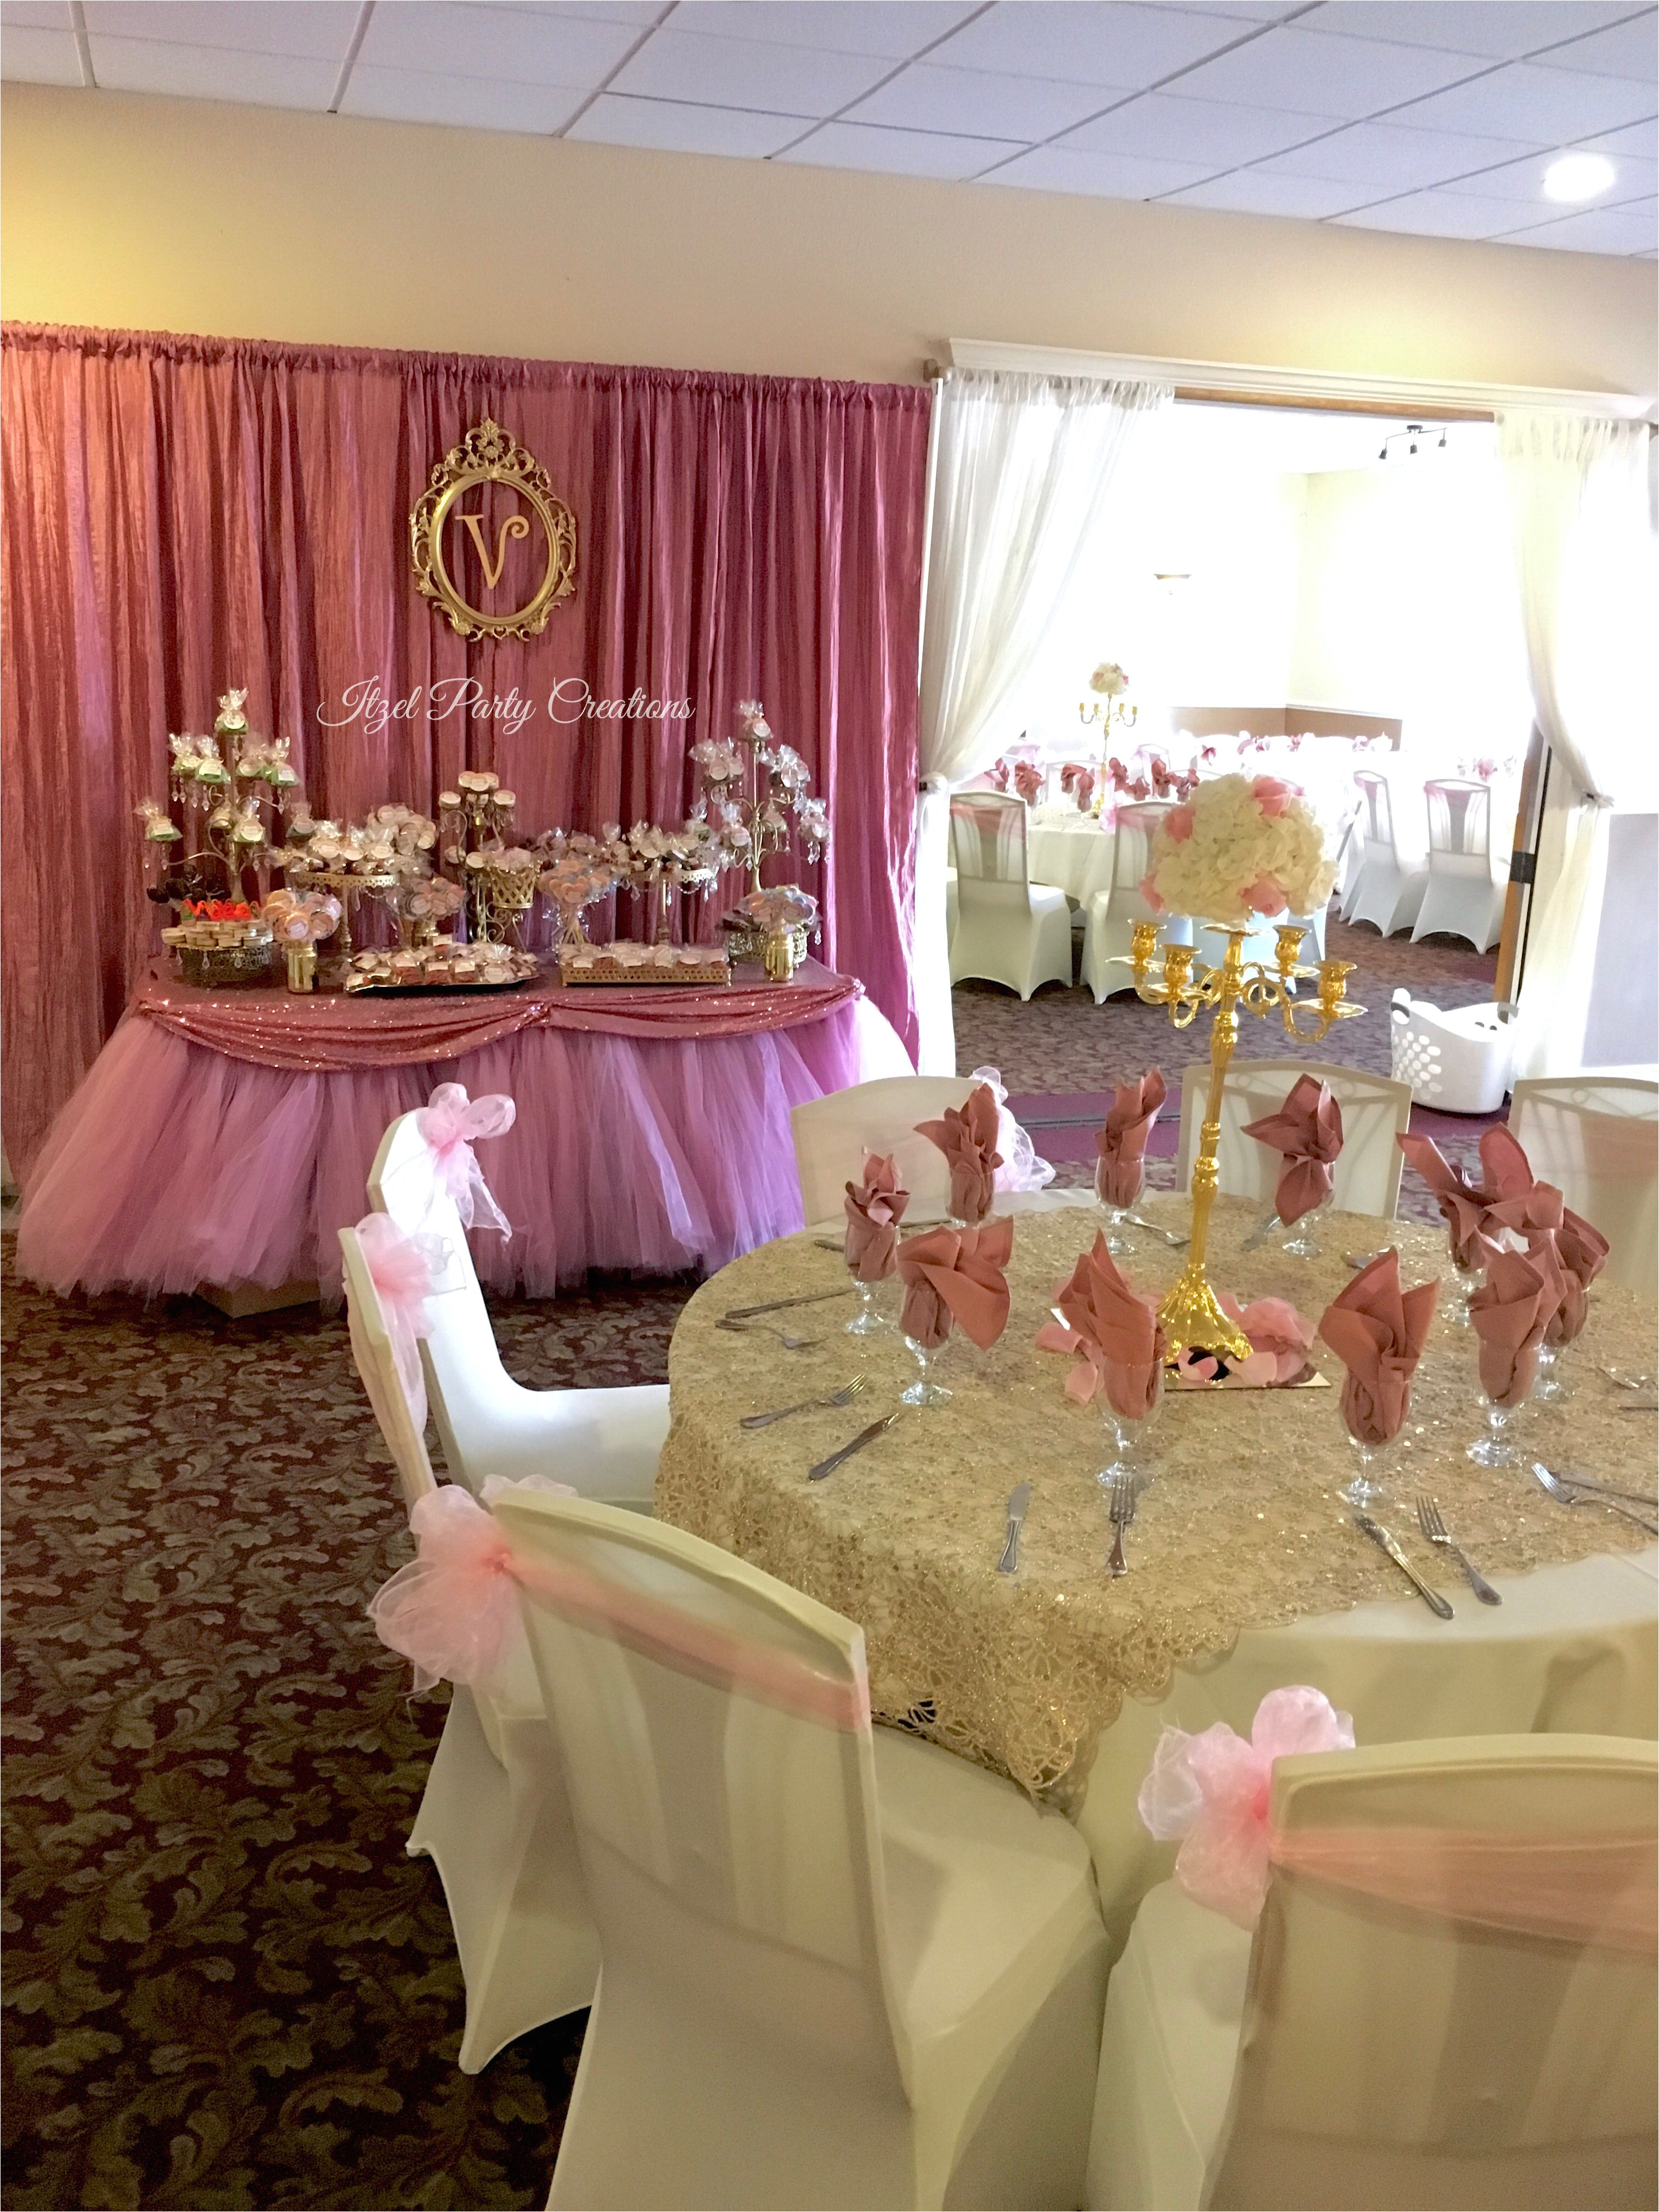 quinceanera ideas dusty rose gold quinceaa era quince decorations quinceanera decorations great gatsby party cupcake